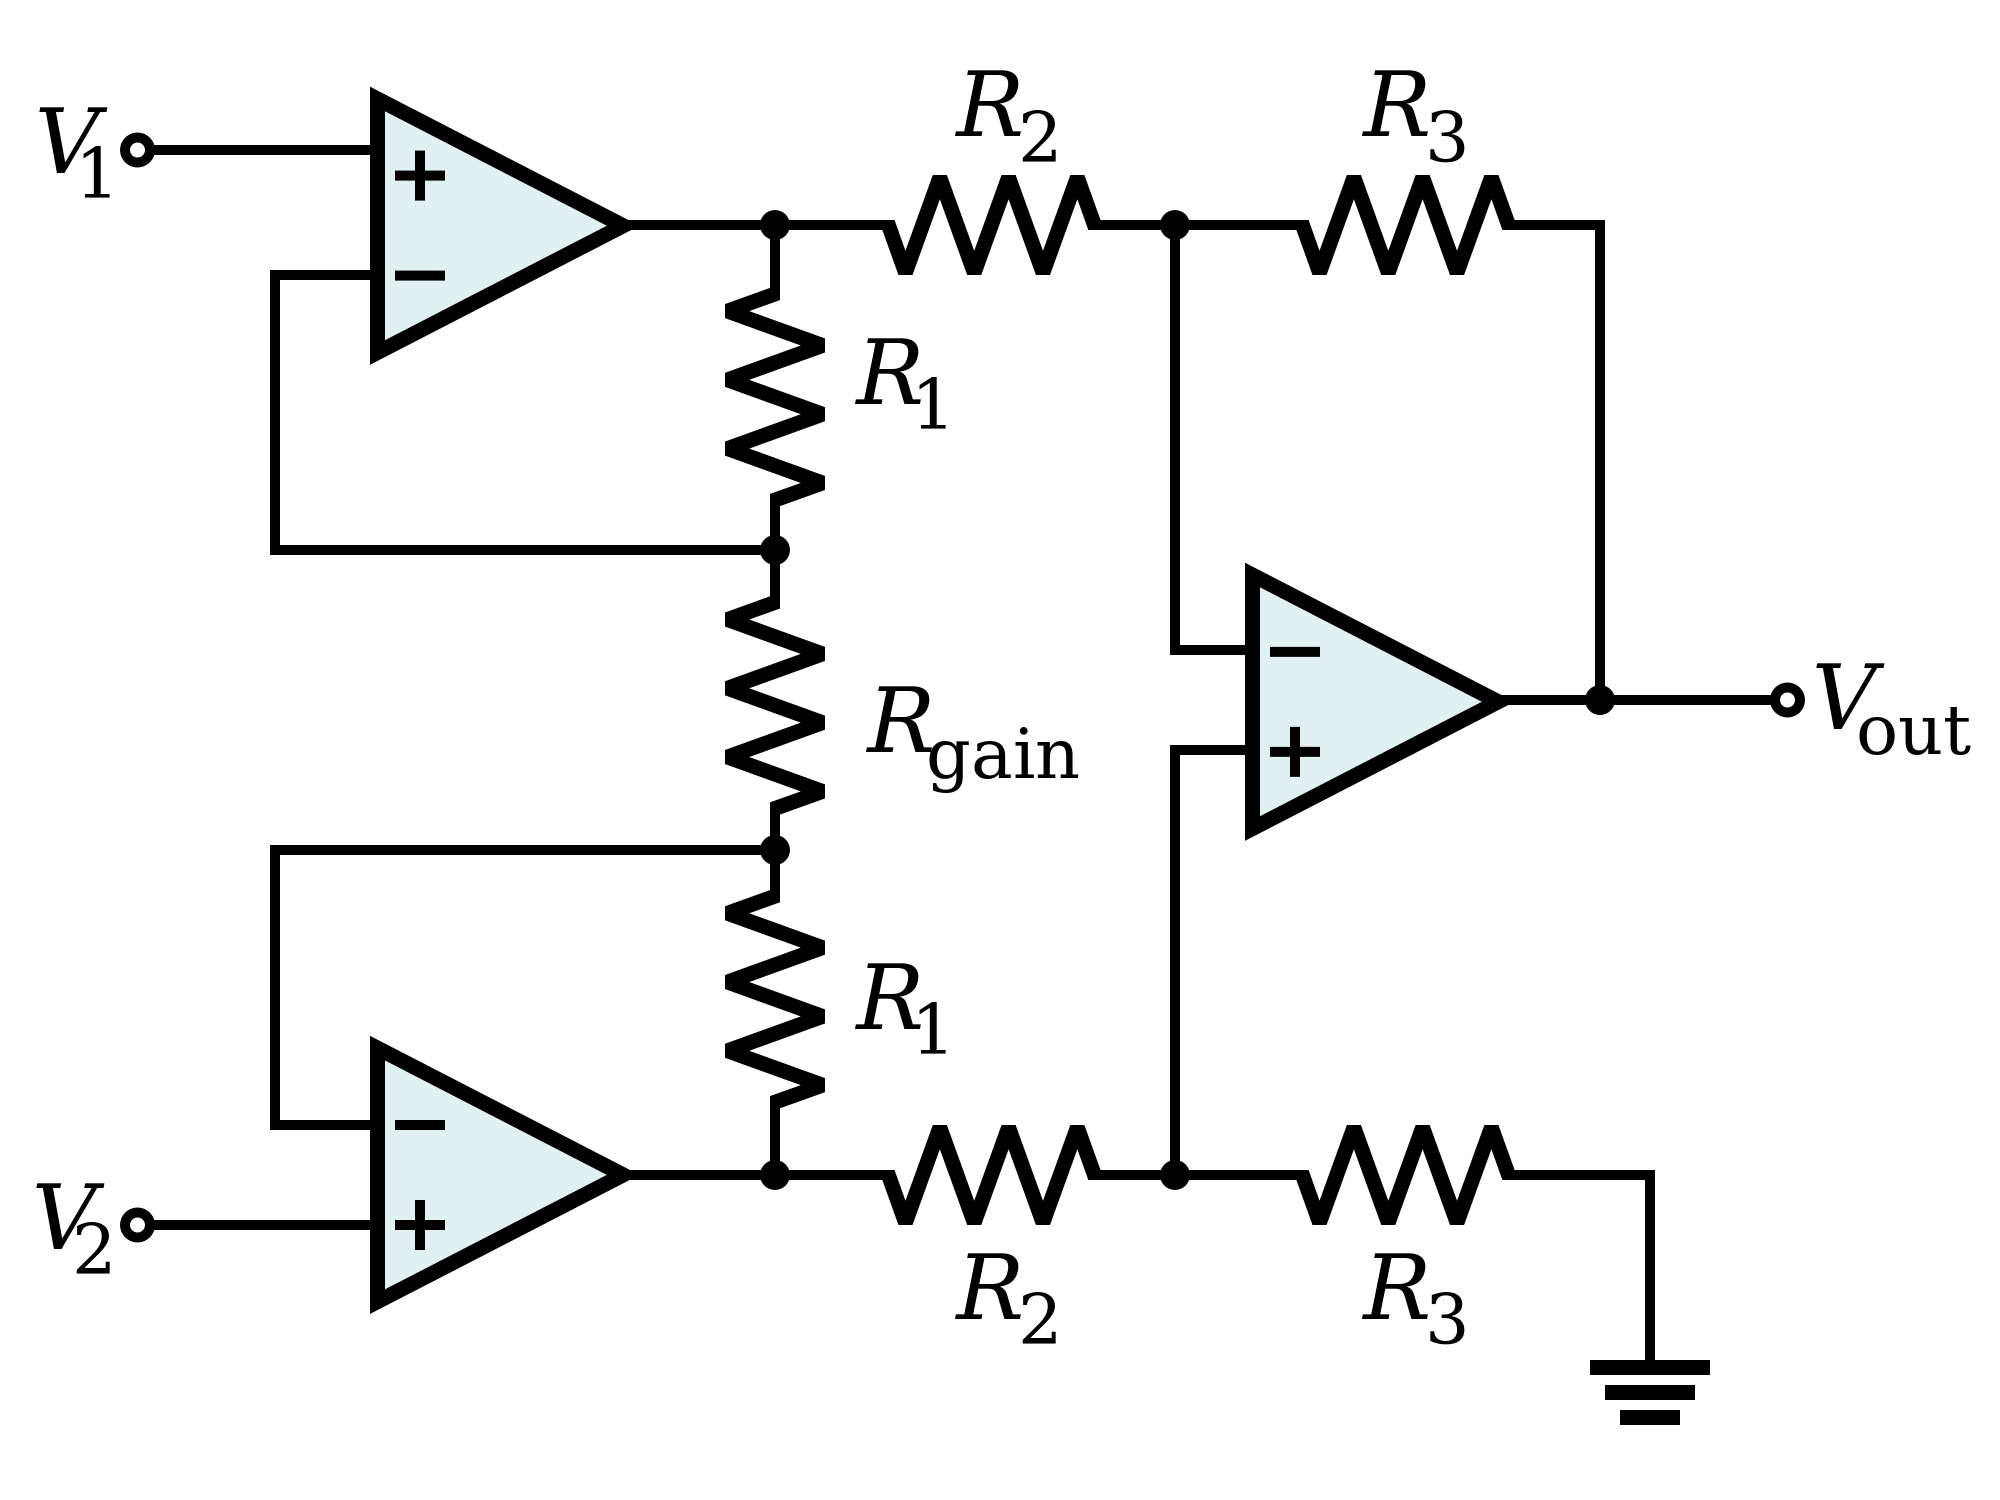 an instrumentation amplifier electrical engineering stack exchange